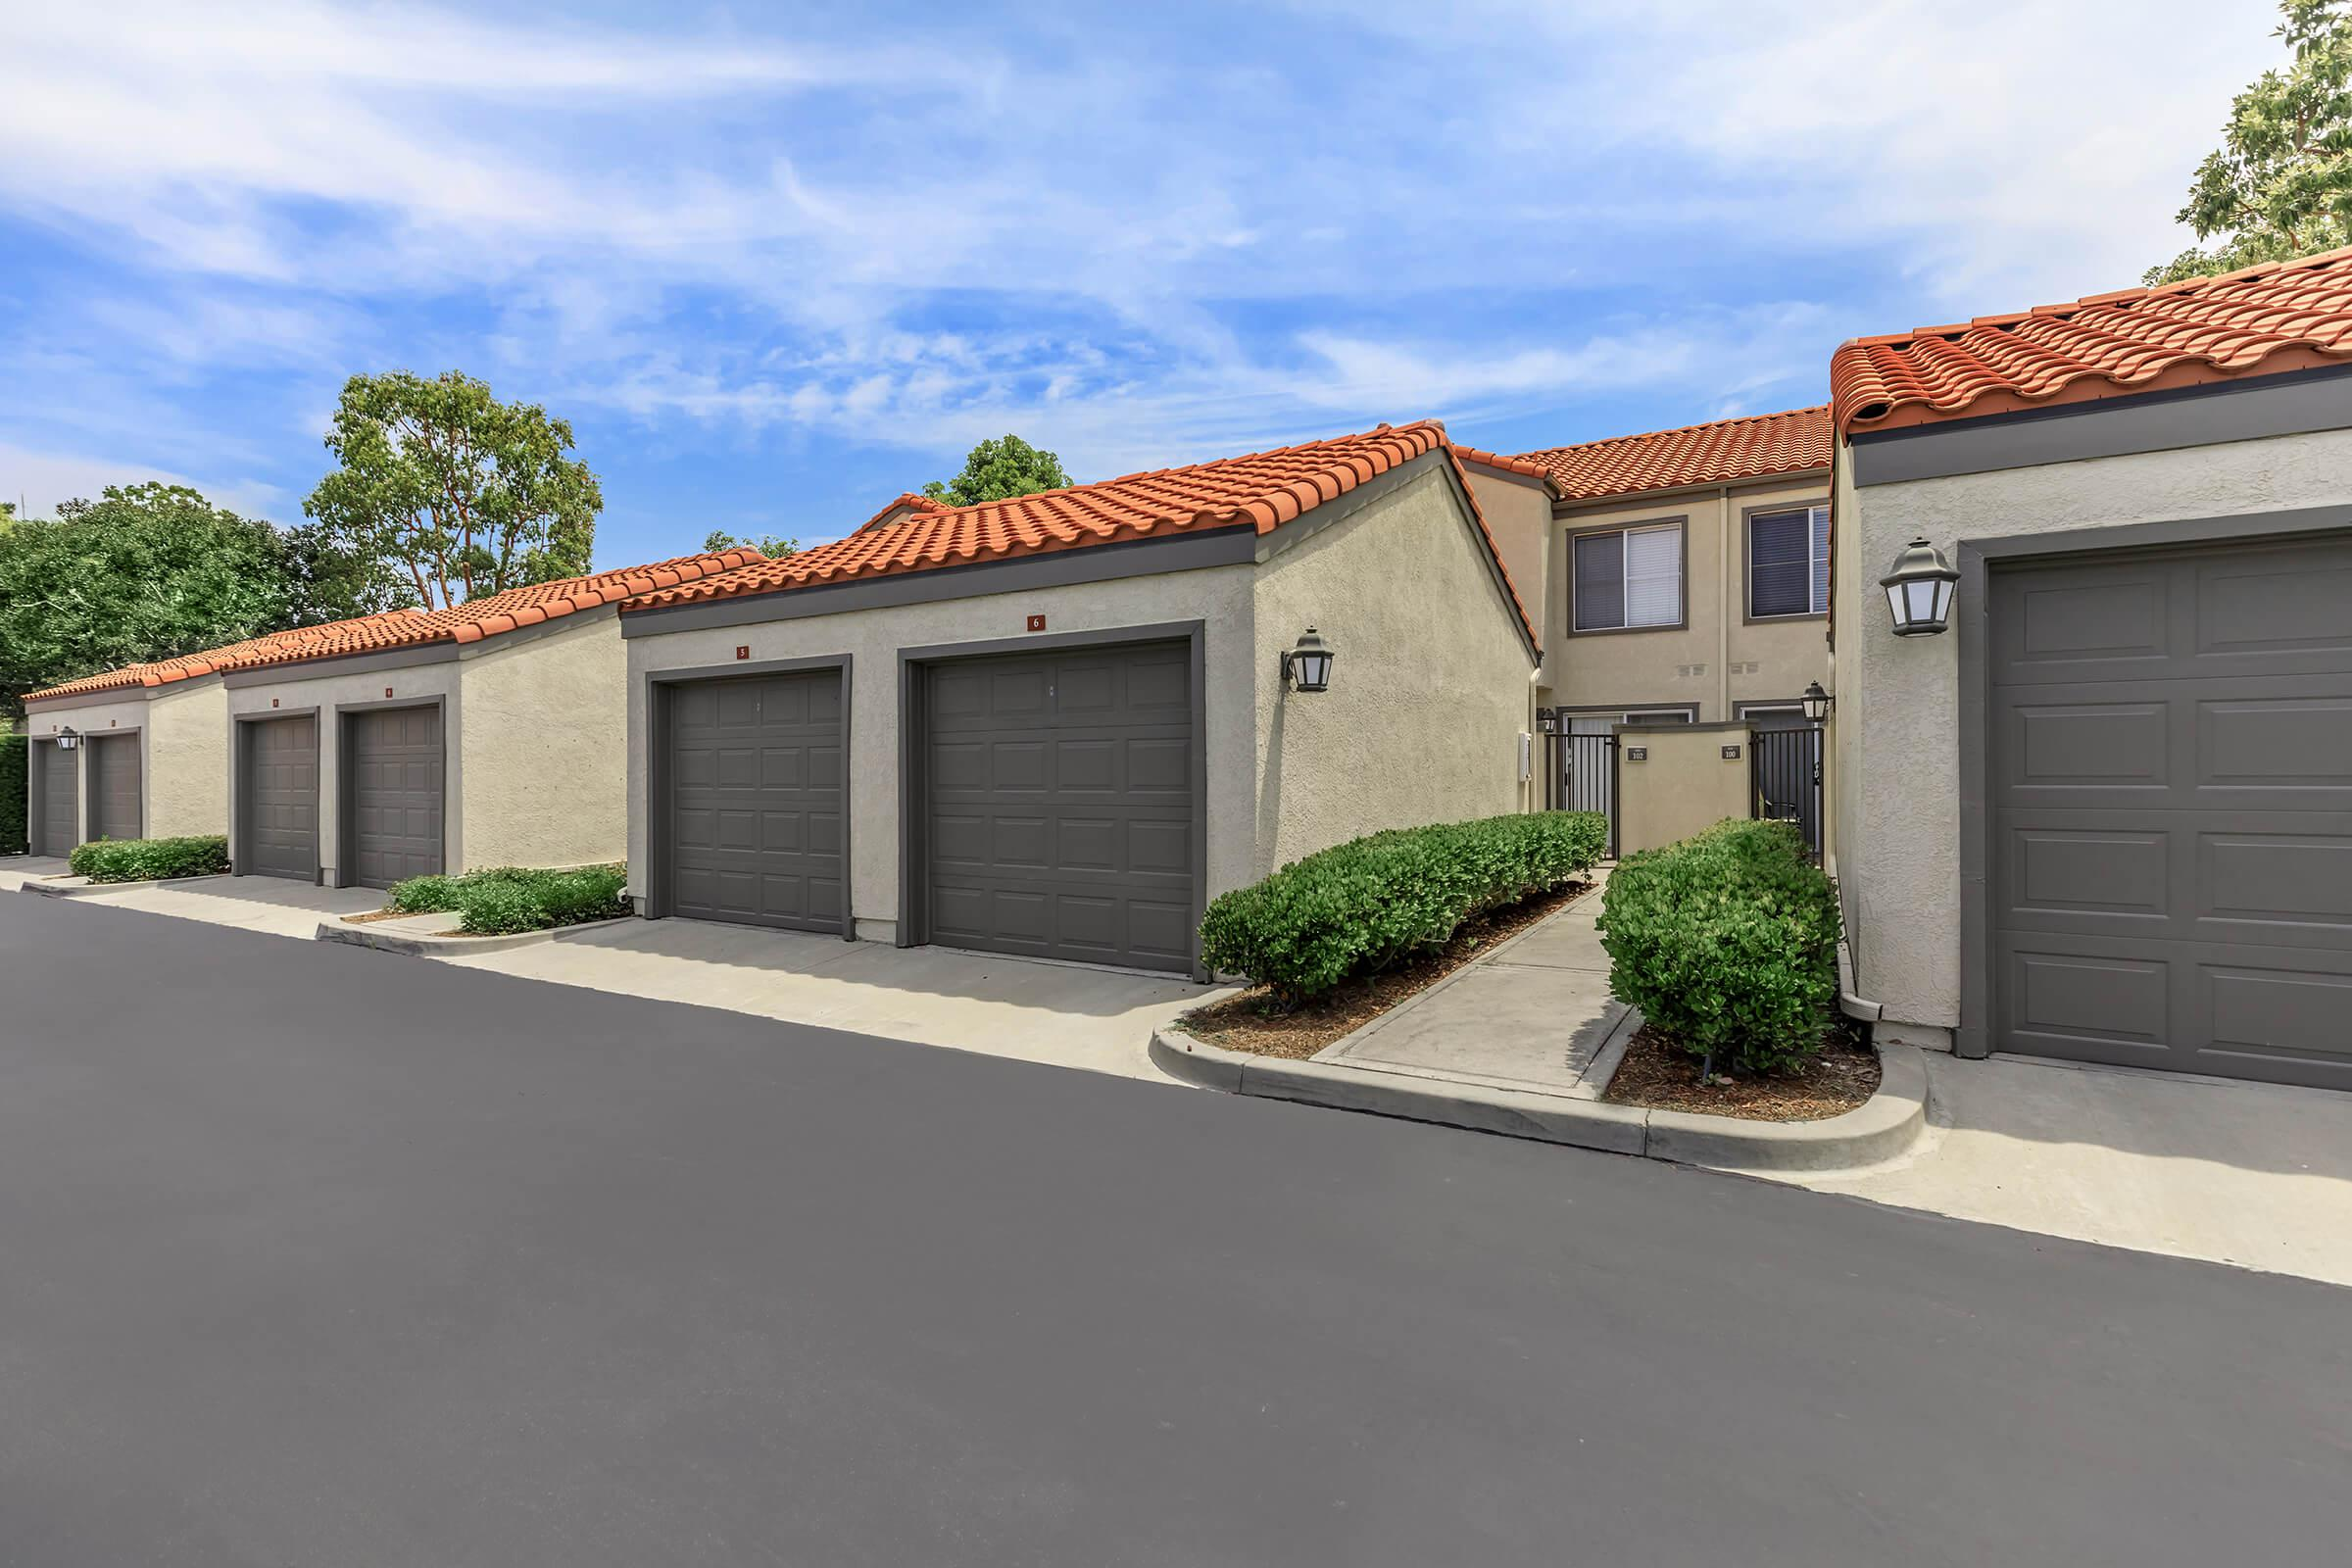 Sycamore Canyon Apartments garages with gray doors